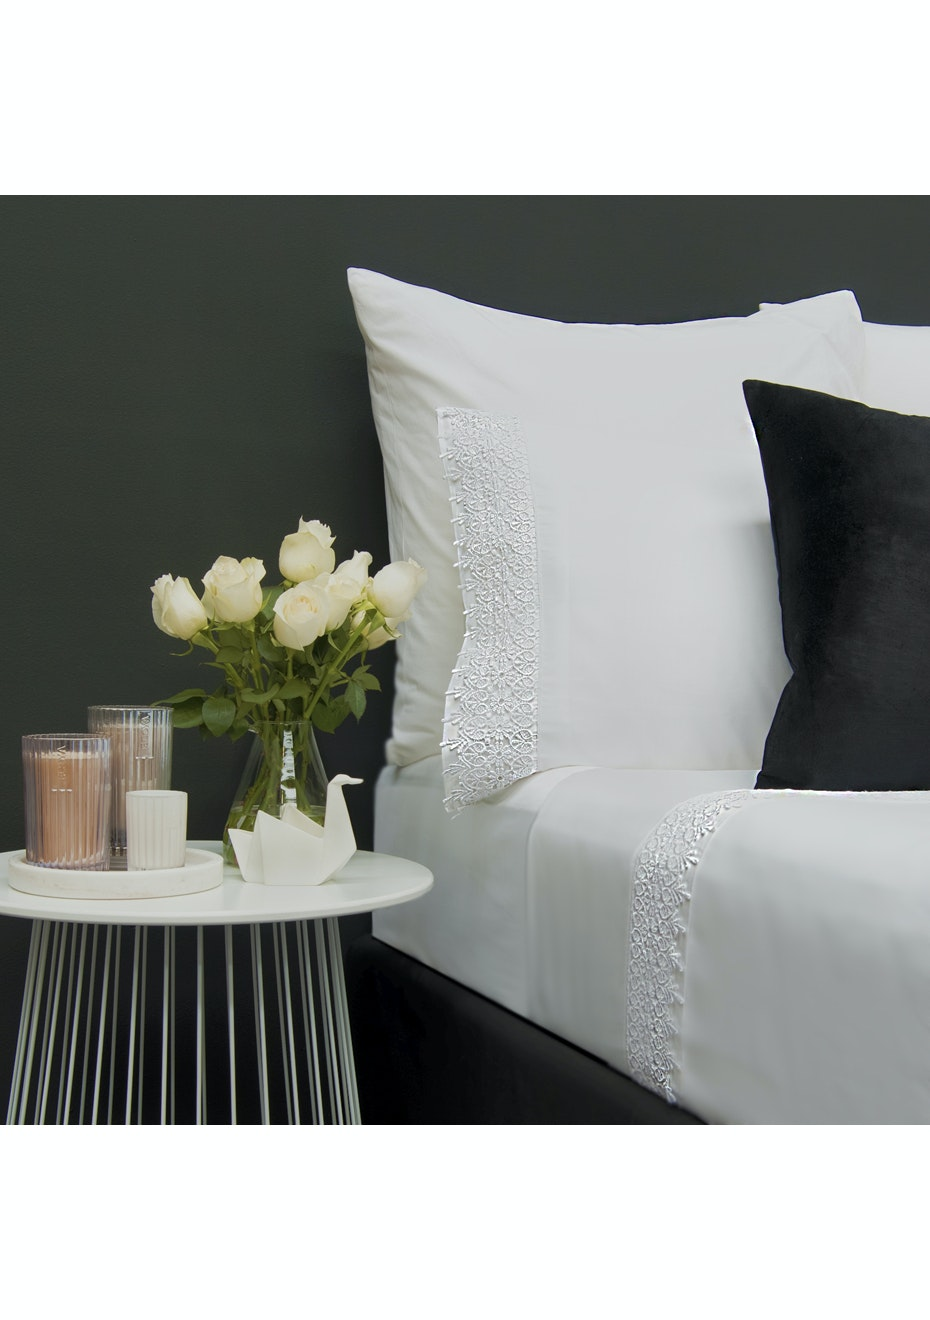 Style & Co 1000 Thread count Egyptian Cotton Hotel Collection Valencia Sheet sets King Silver